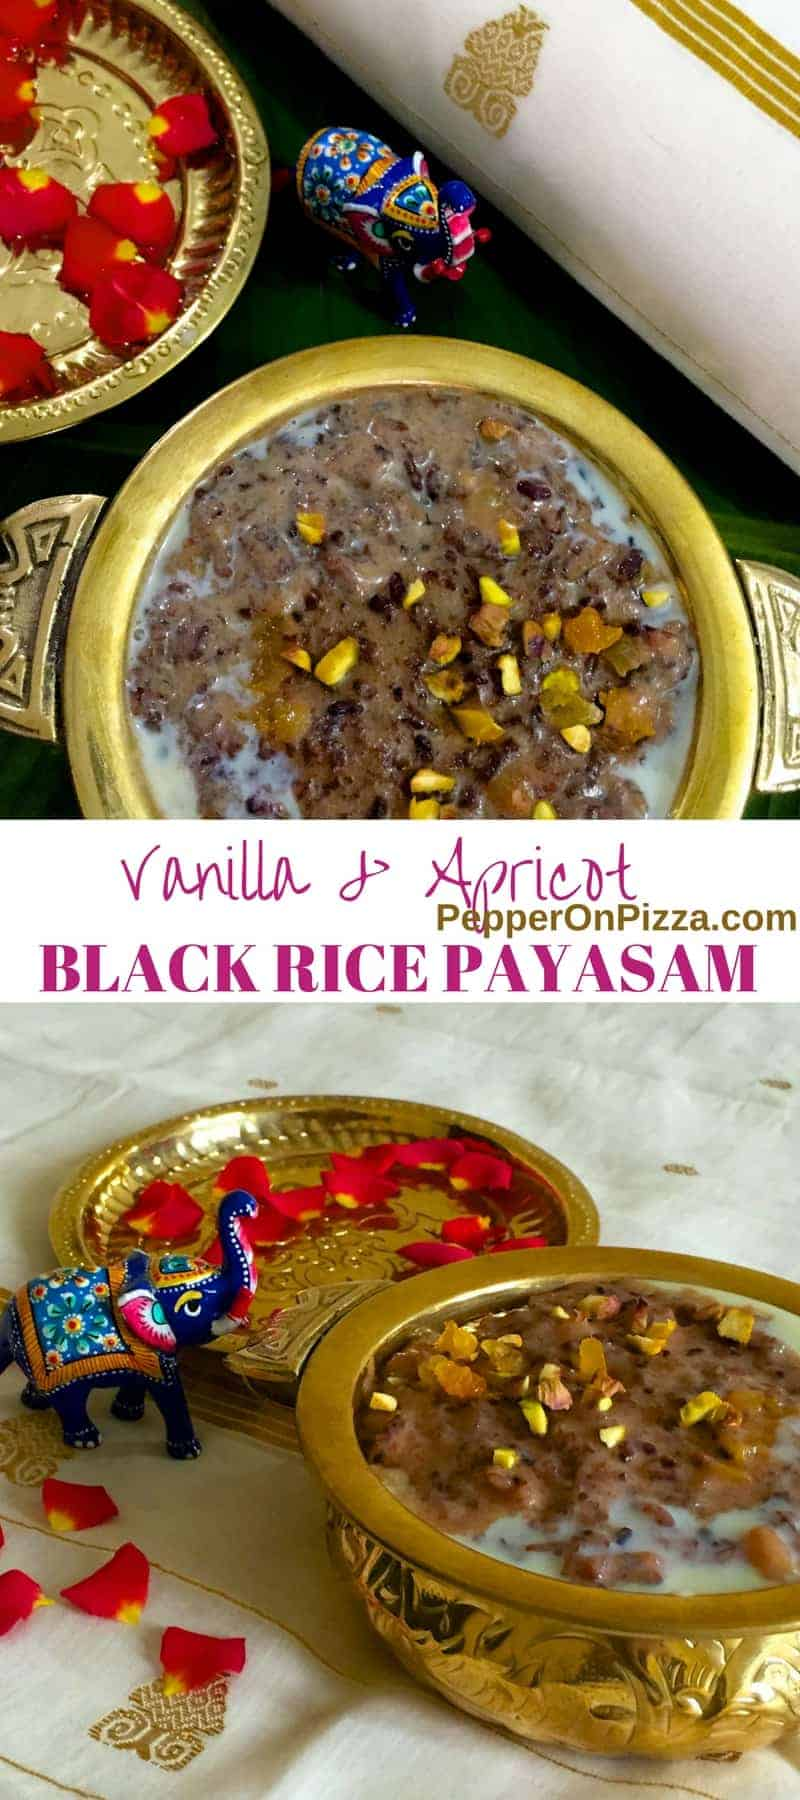 Exotic Healthy Black Rice Kheer Payasam of Vanilla, Apricot and Pistachio. The Black 'Forbidden Rice' is nutritious, fragrant with a pleasant nutty taste.